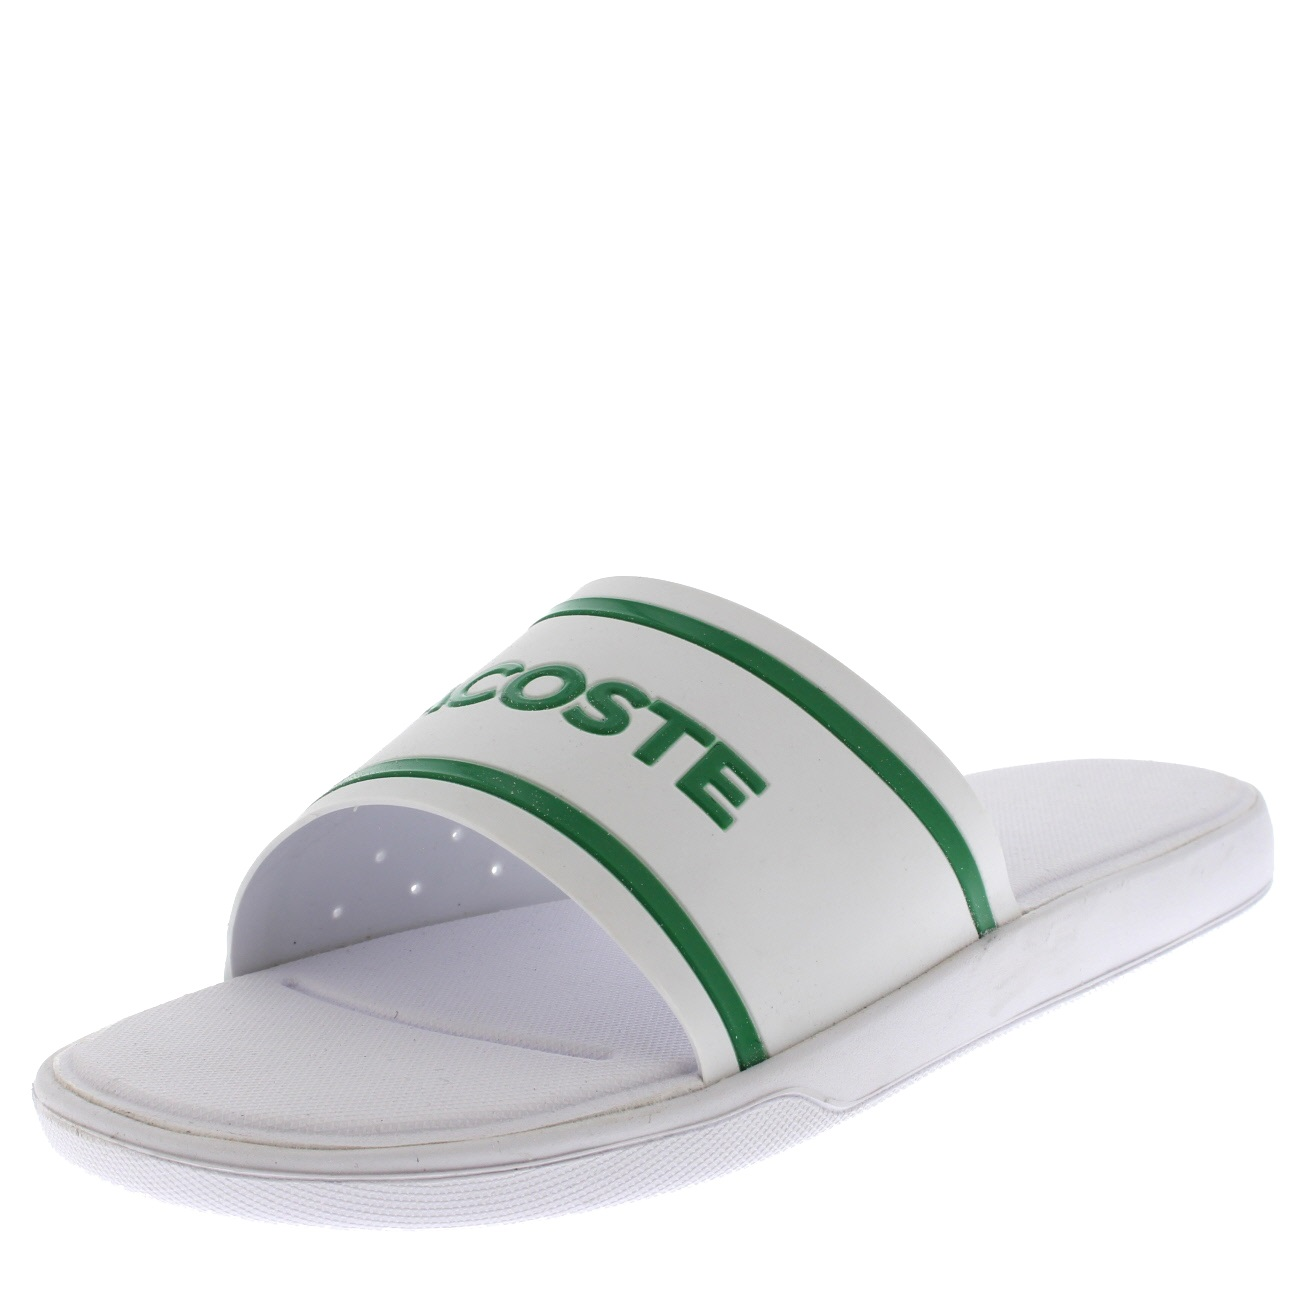 377e47c9f9a8 Mens Lacoste L.30 118 2 Slides Casual Flat Beach Holiday Sport ...